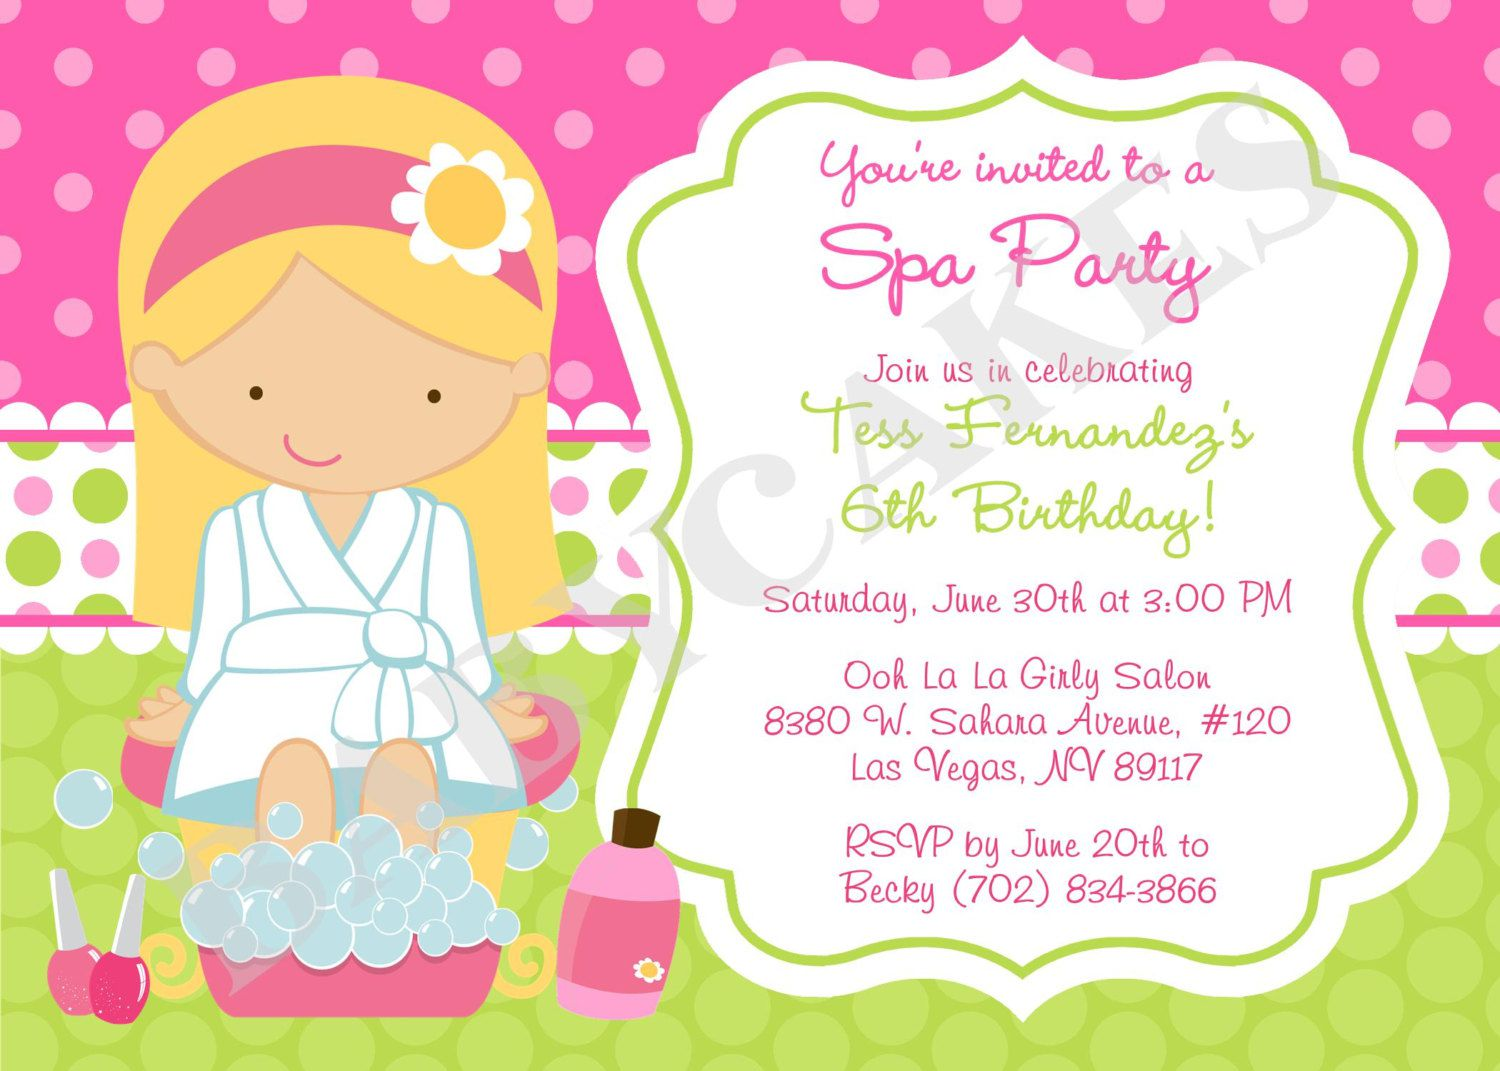 Spa Birthday Party Ideas Pinterest